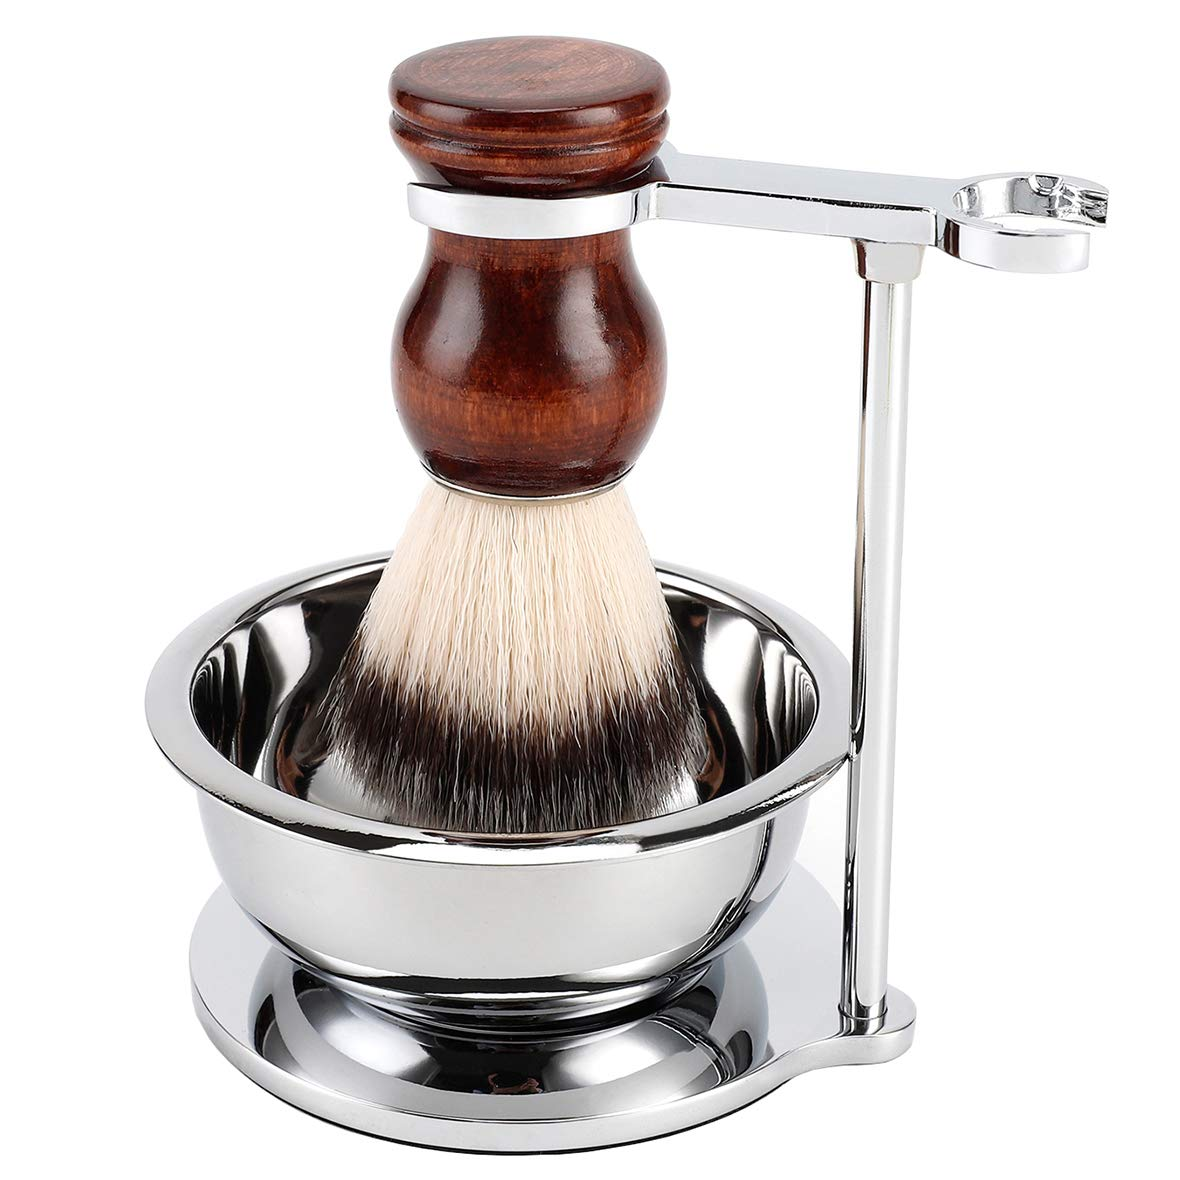 PerPro Deluxe Stainless Shave Razor Stand + Shaving Soap Bowl with Shaving Brush,Compatible with Gillette Fusion and Mach 3,Safety Razor,Double Edge Razor,Manual Razor